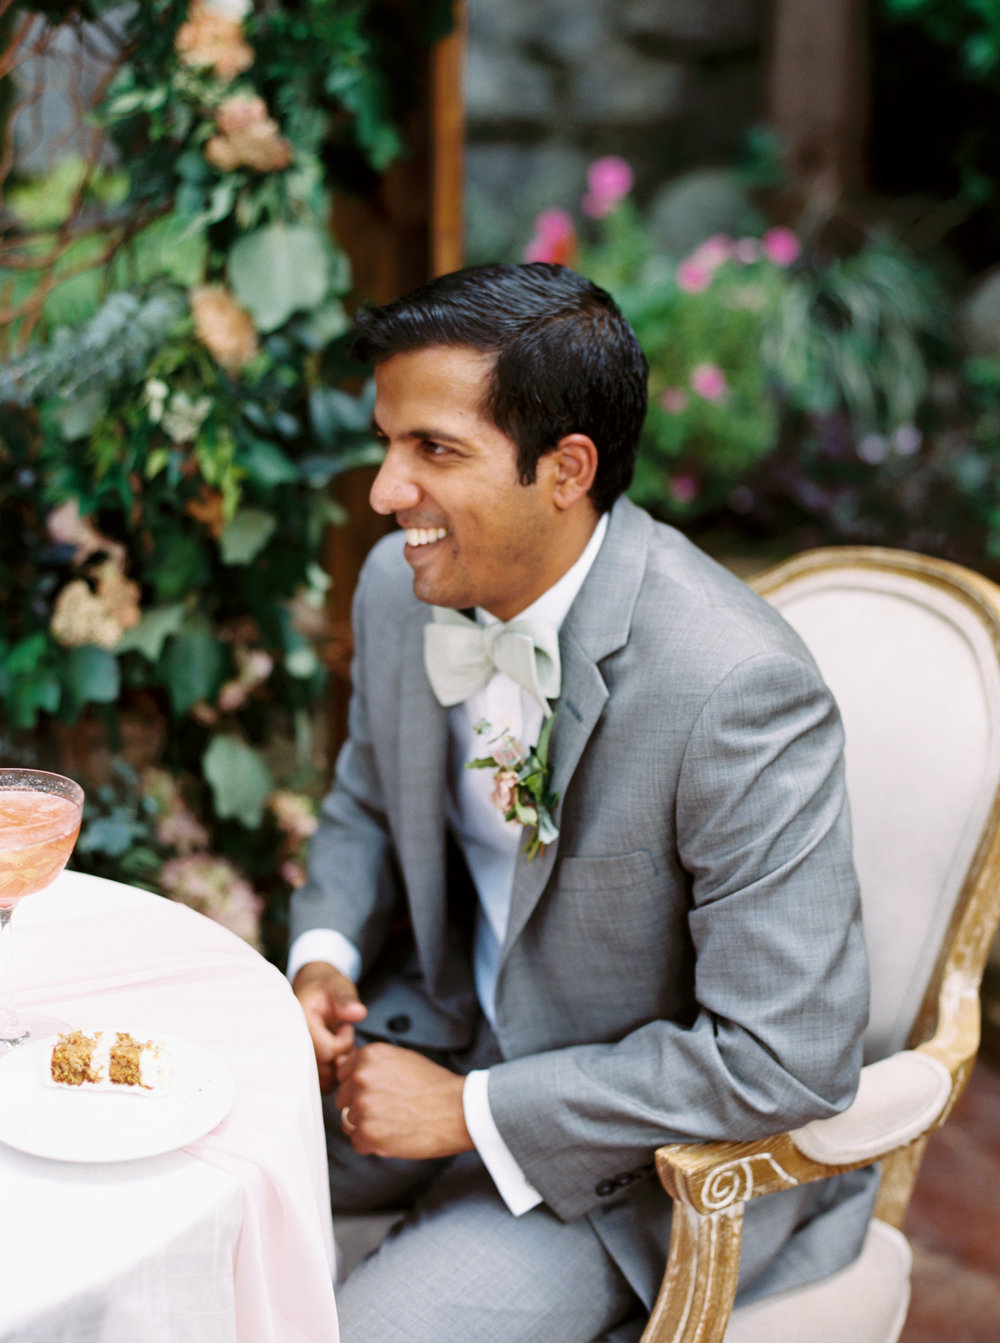 Wahoo_Grill_Atlanta_Indian_Wedding_Abigail_Malone_Photgoraphy_FIlm-150.jpg